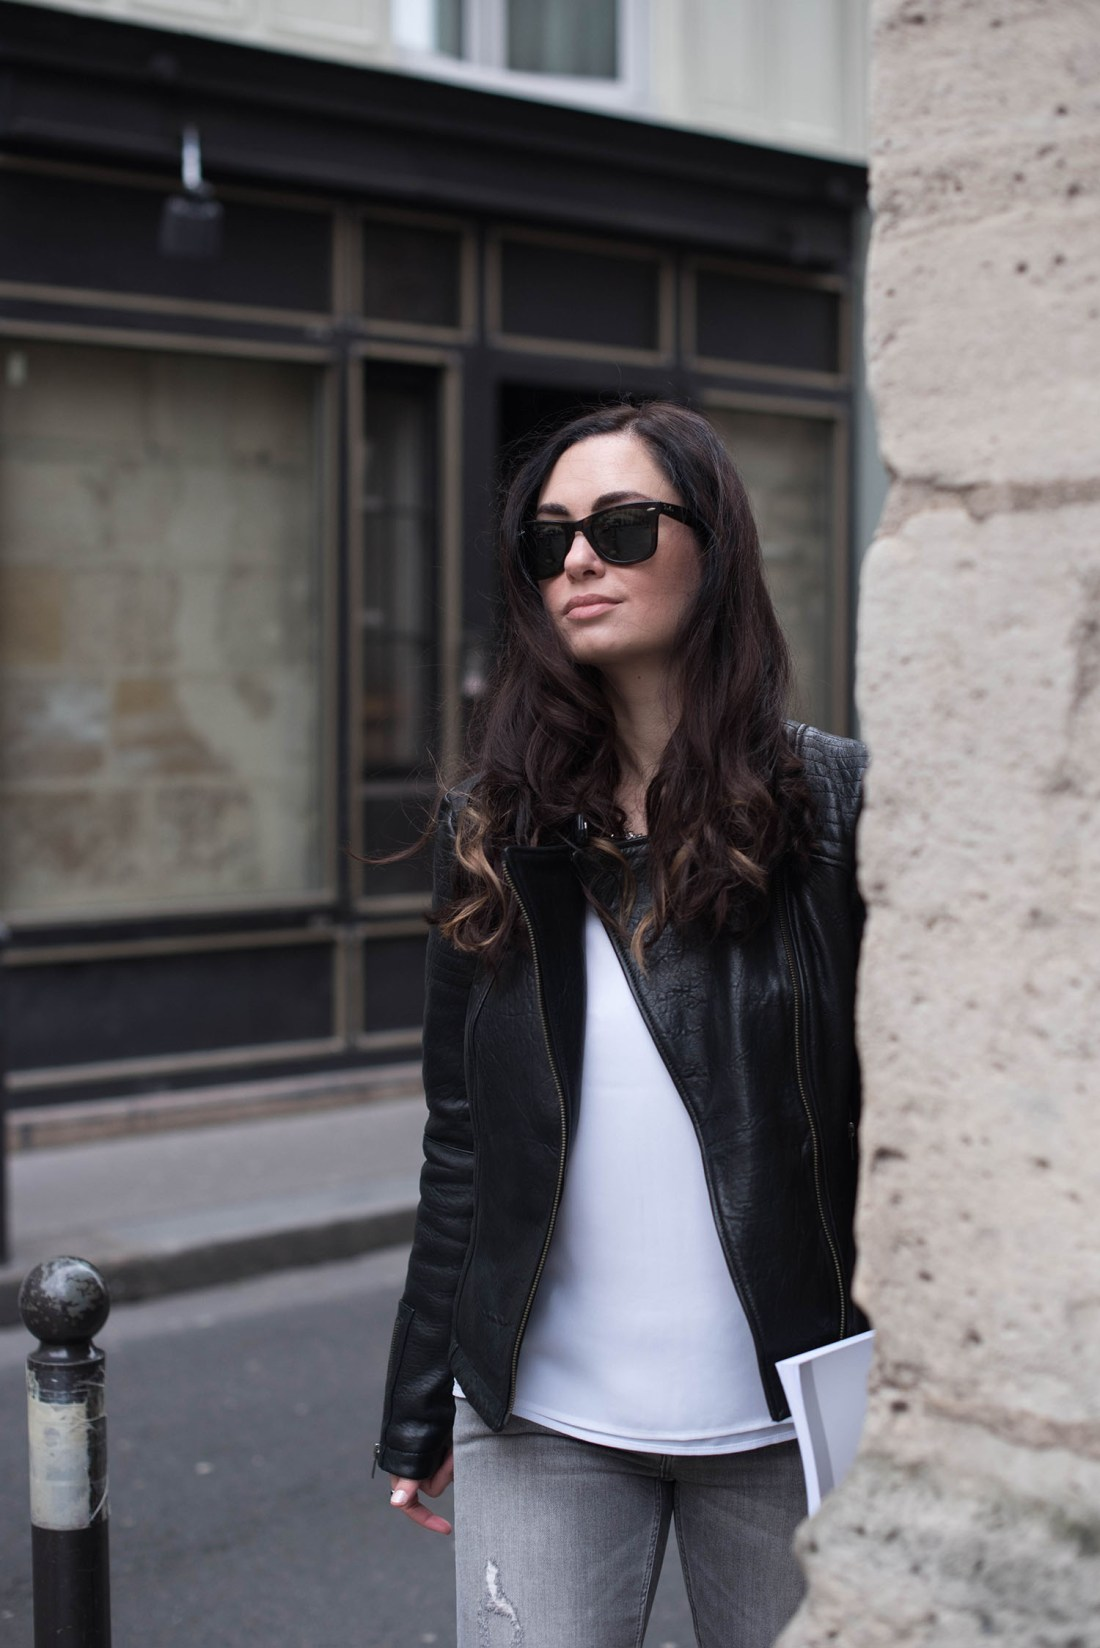 Portrait of fashion blogger Cee Fardoe of Coco & Vera in Paris' Saint-Germain, wearing Ray Ban wayfarer sunglasses